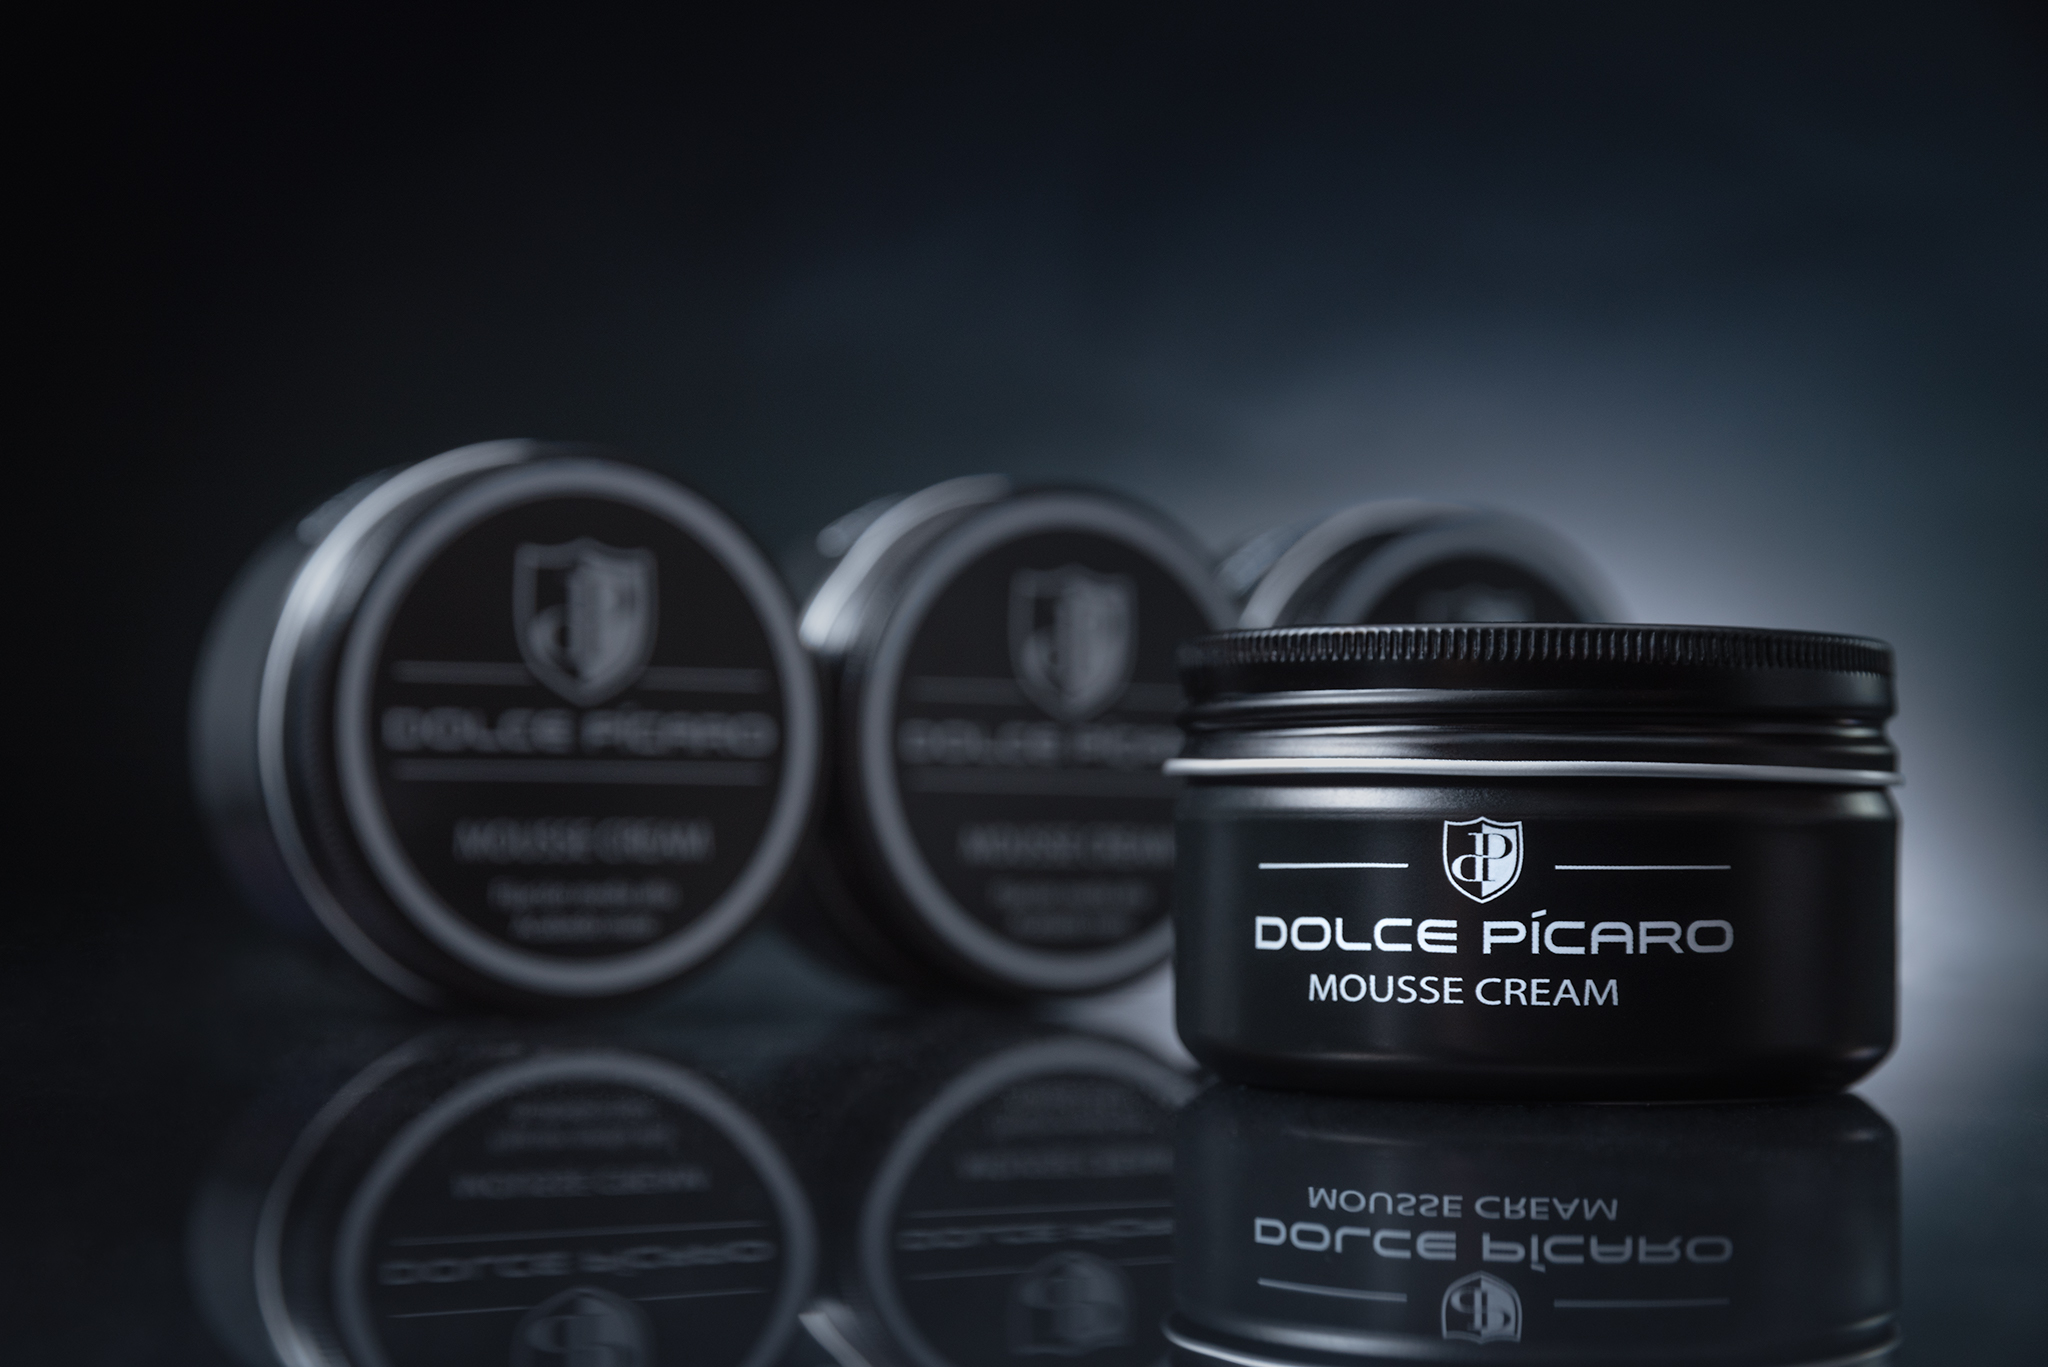 Dolce Picaro Products